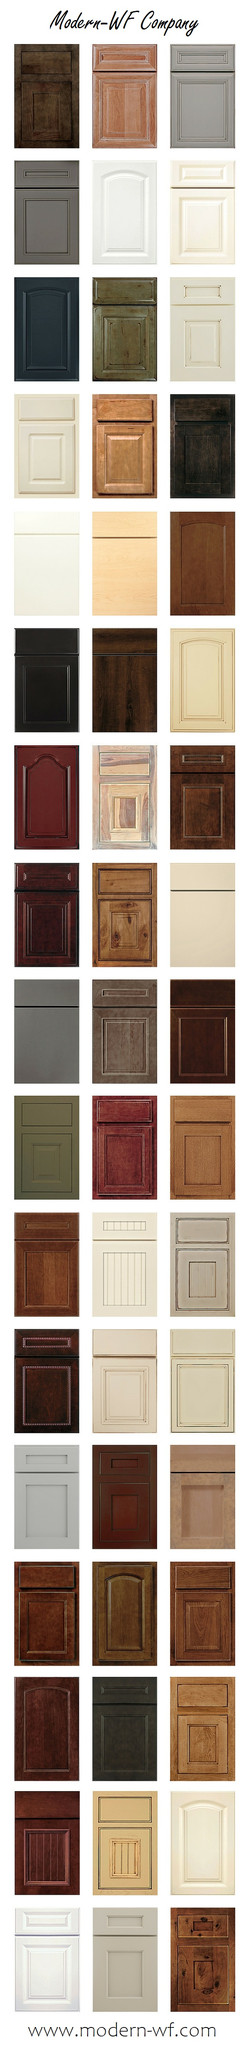 The Detailed Wellborn Cabinets Guide - MODERN-WF